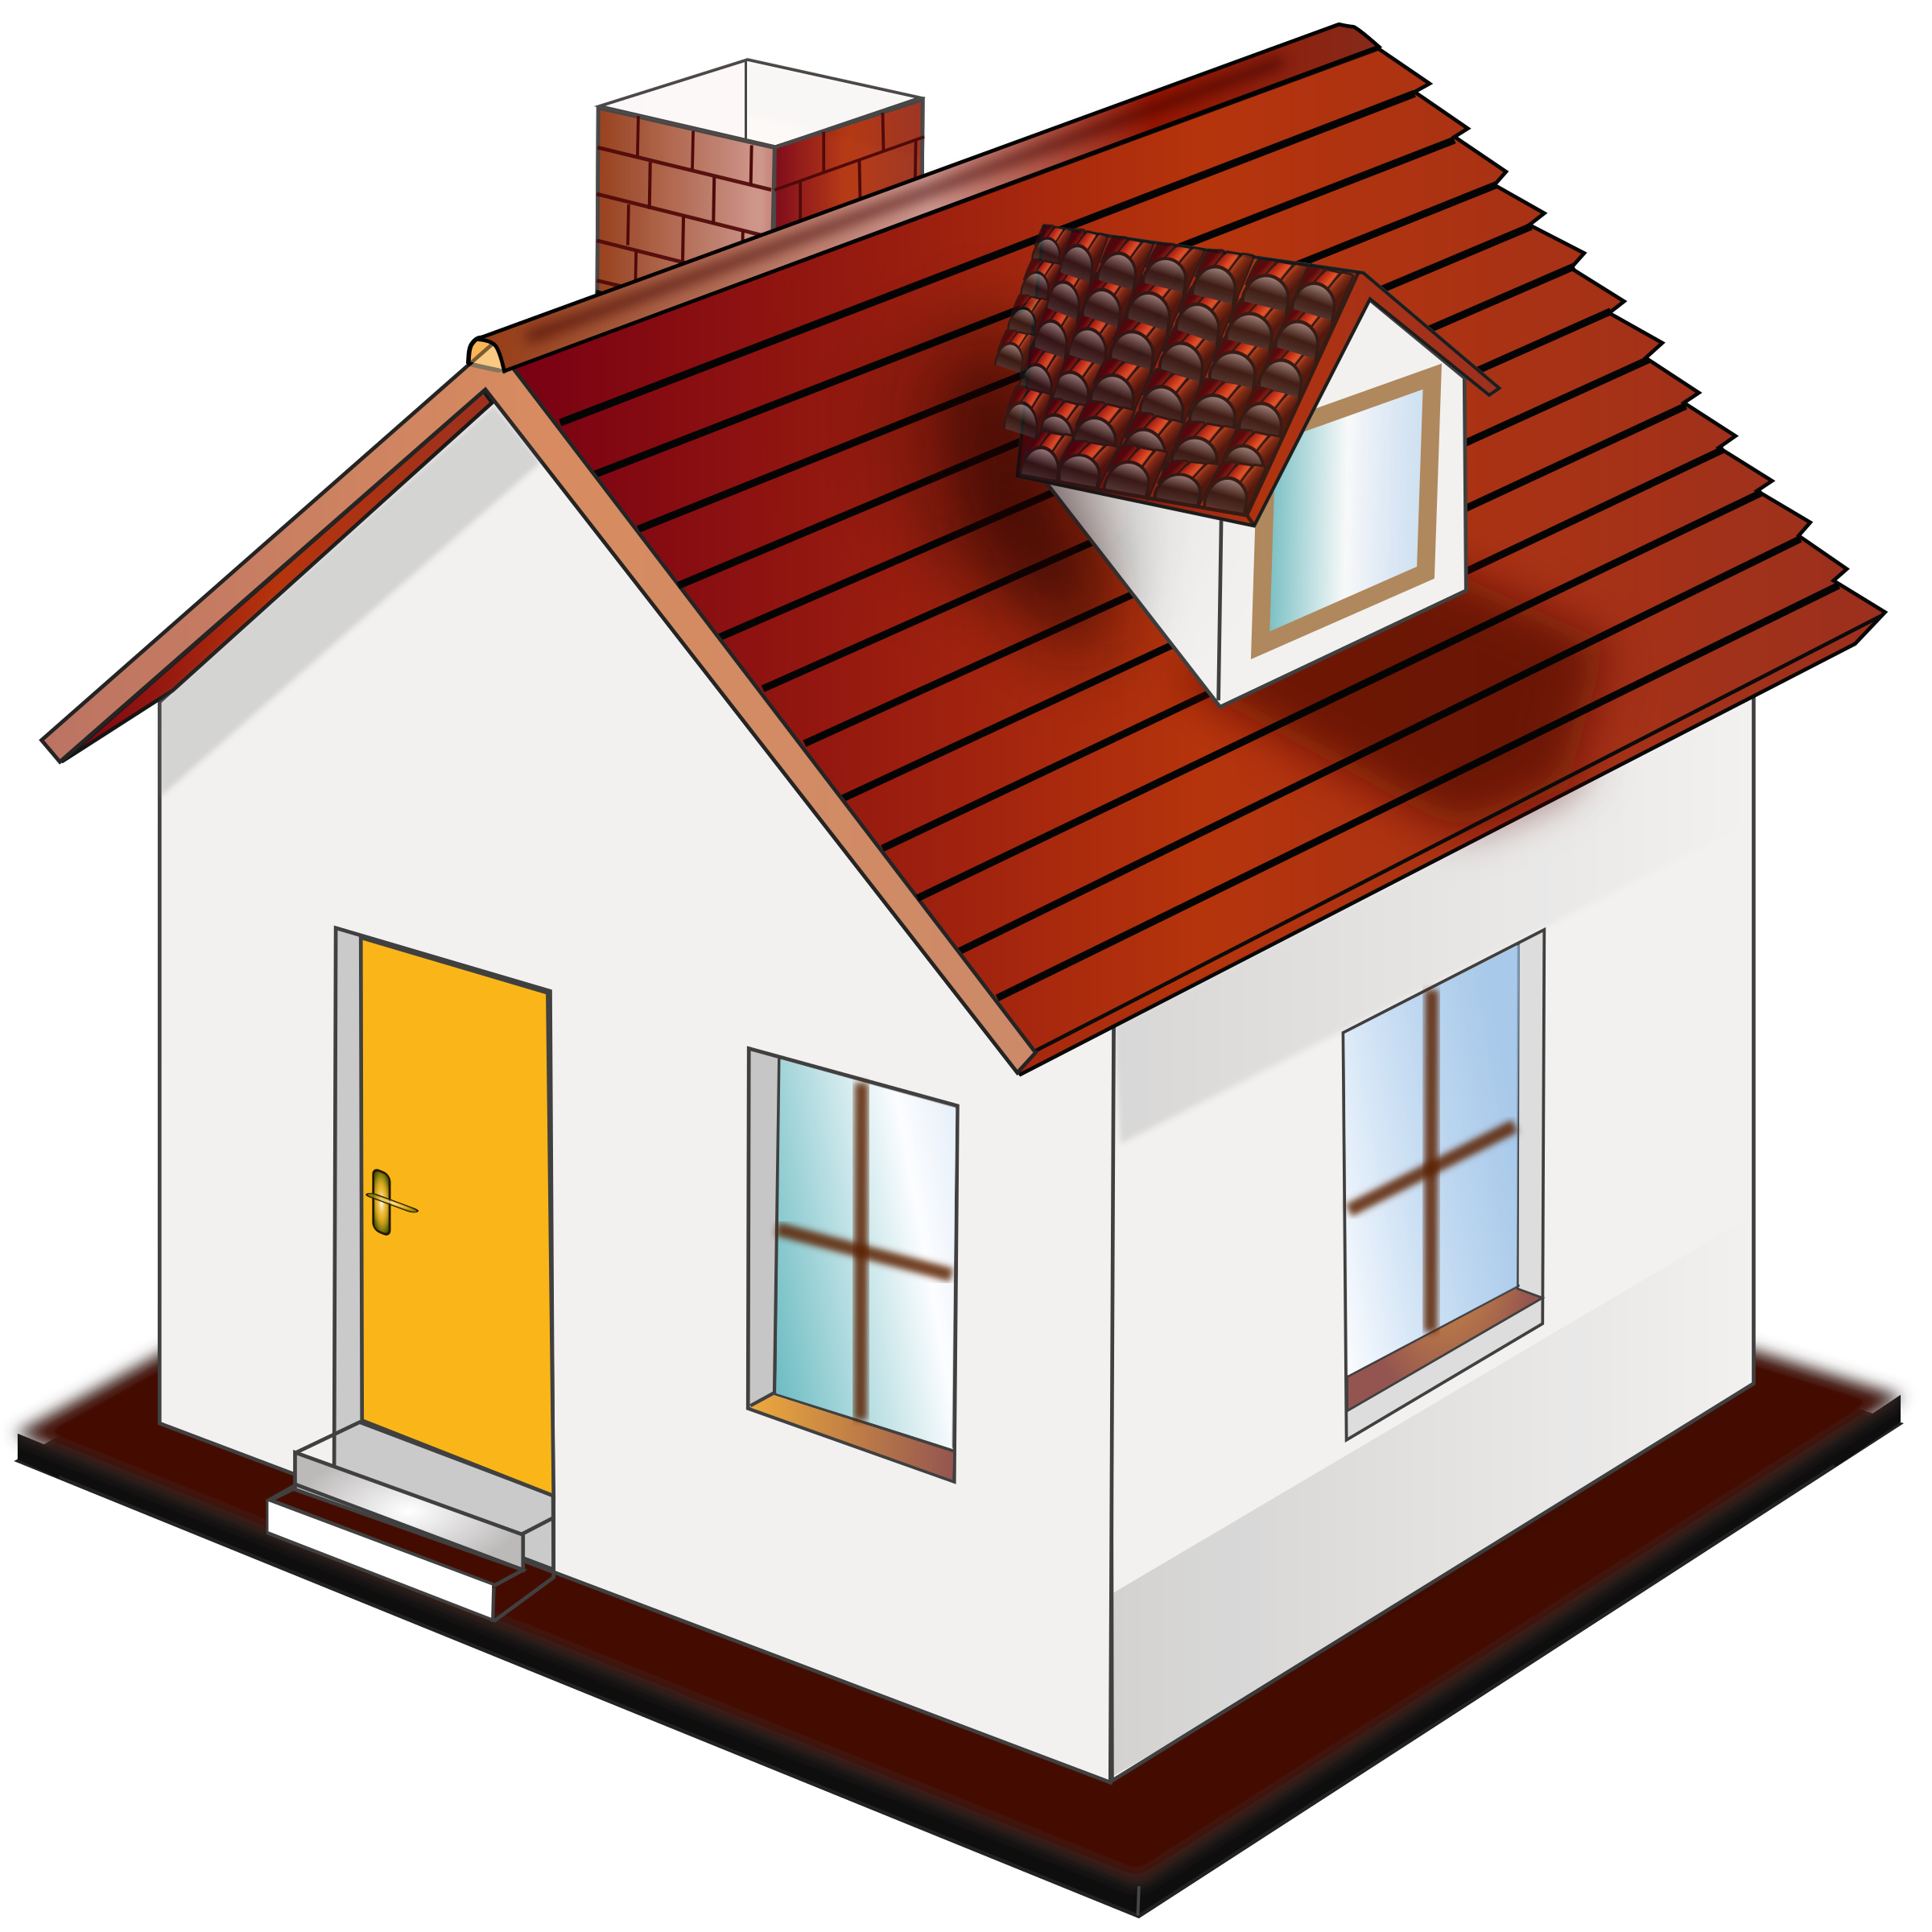 Clipart building house image transparent download Building house clipart clipart images gallery for free download ... image transparent download